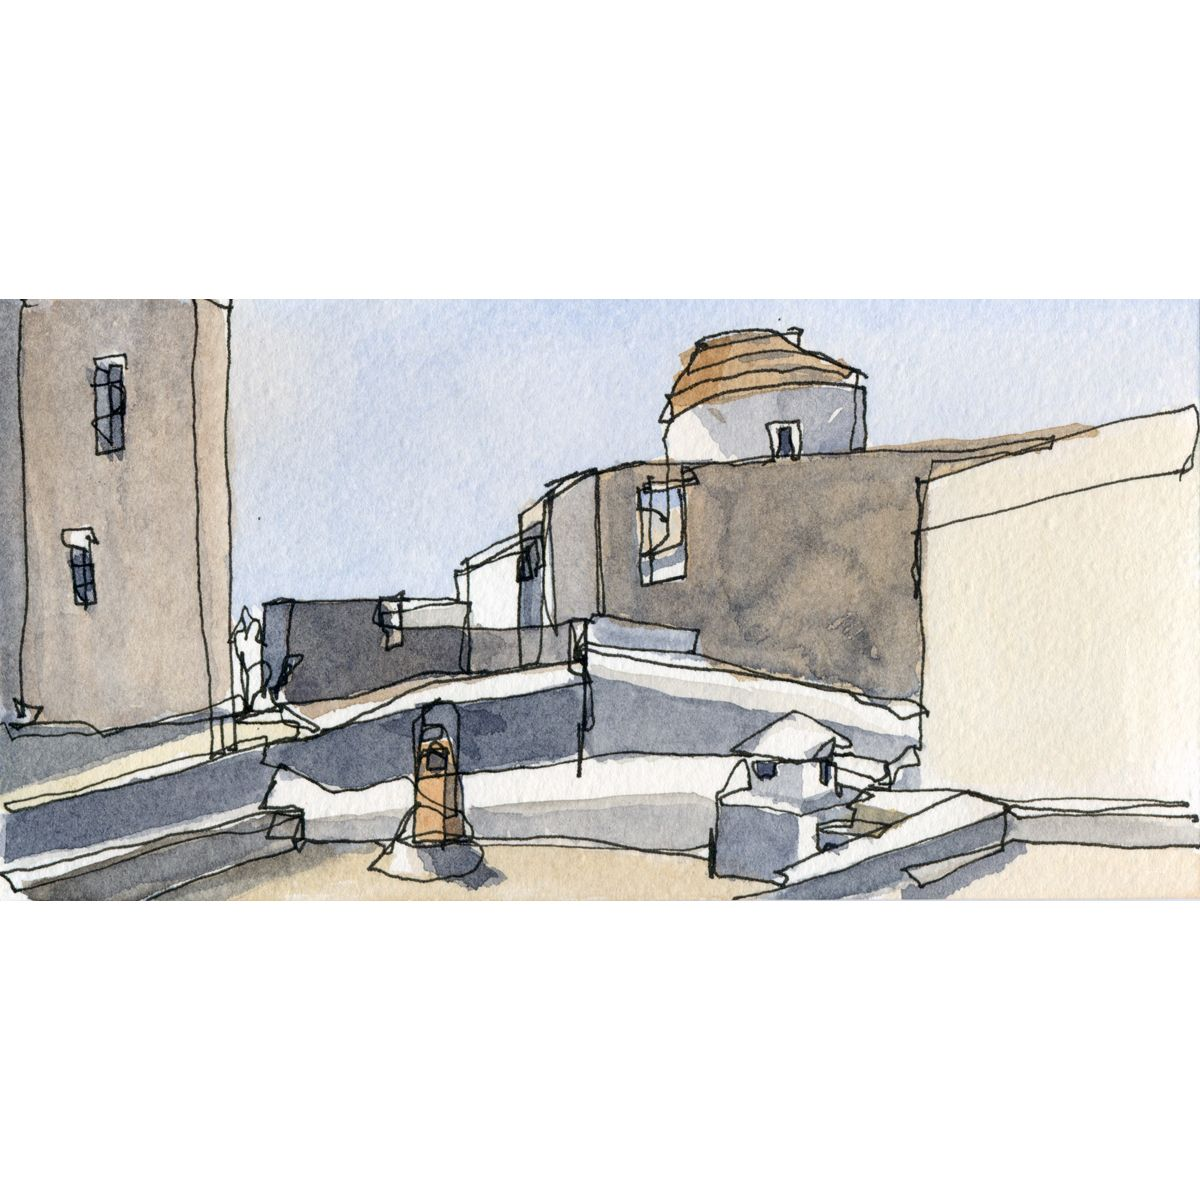 Most buildings under the walls of the monastery are white, not all. Water colors. Dimensions 10 x 20 cm